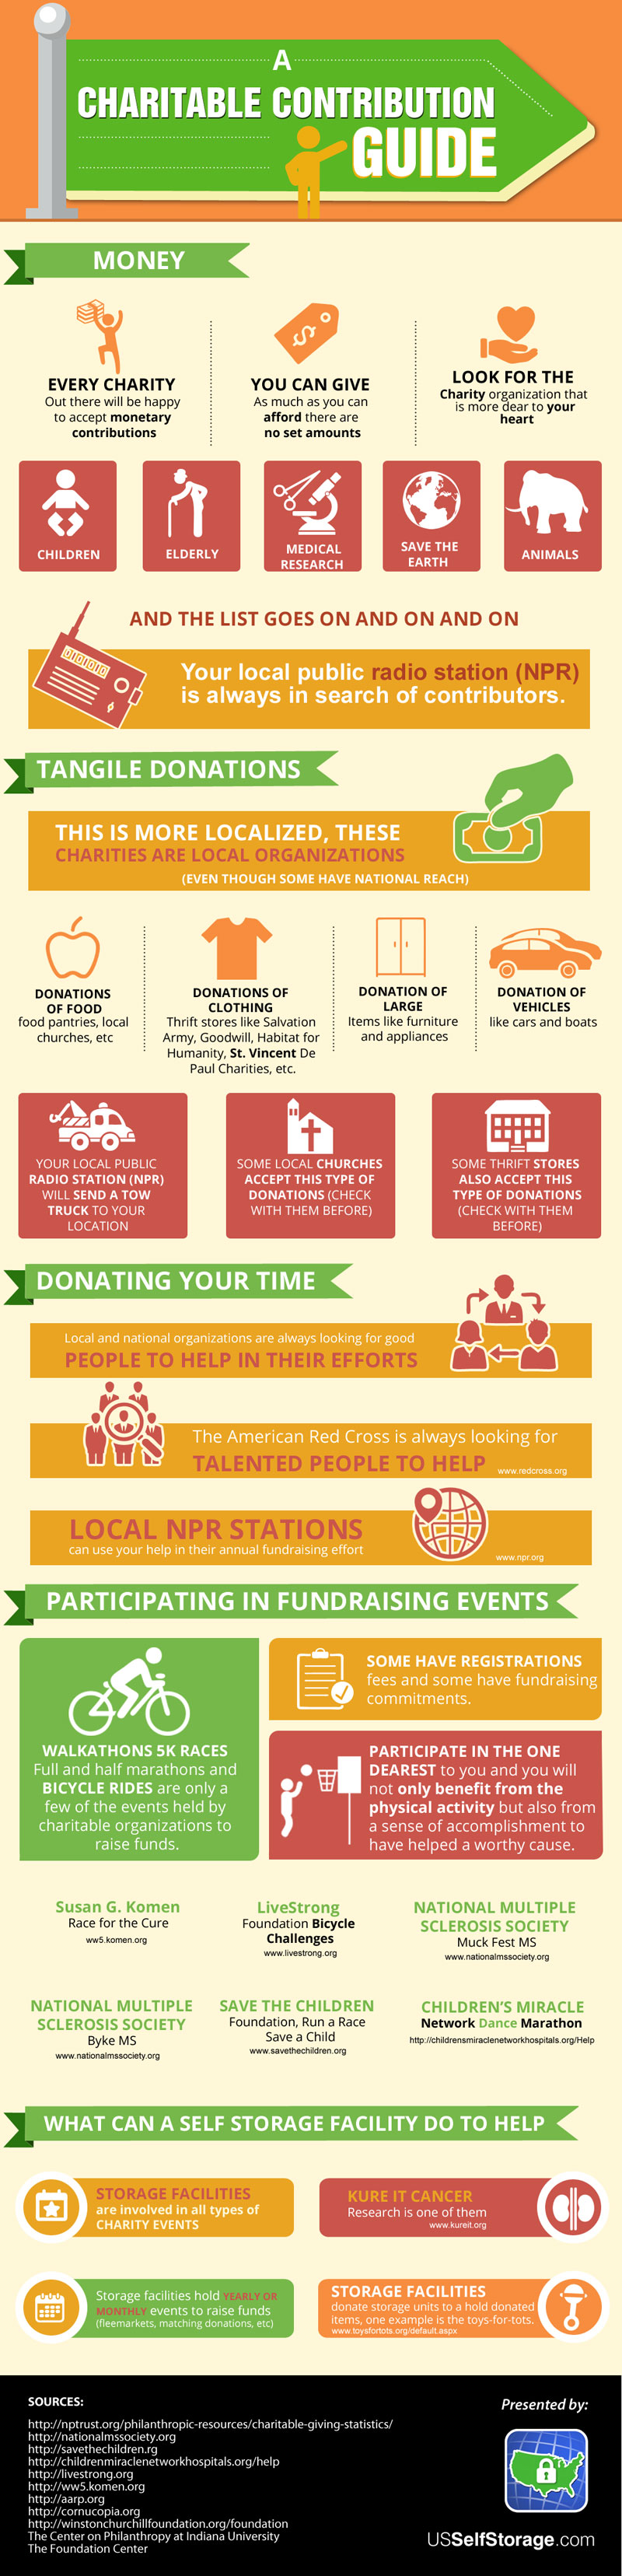 A Charitable Contribution Guide